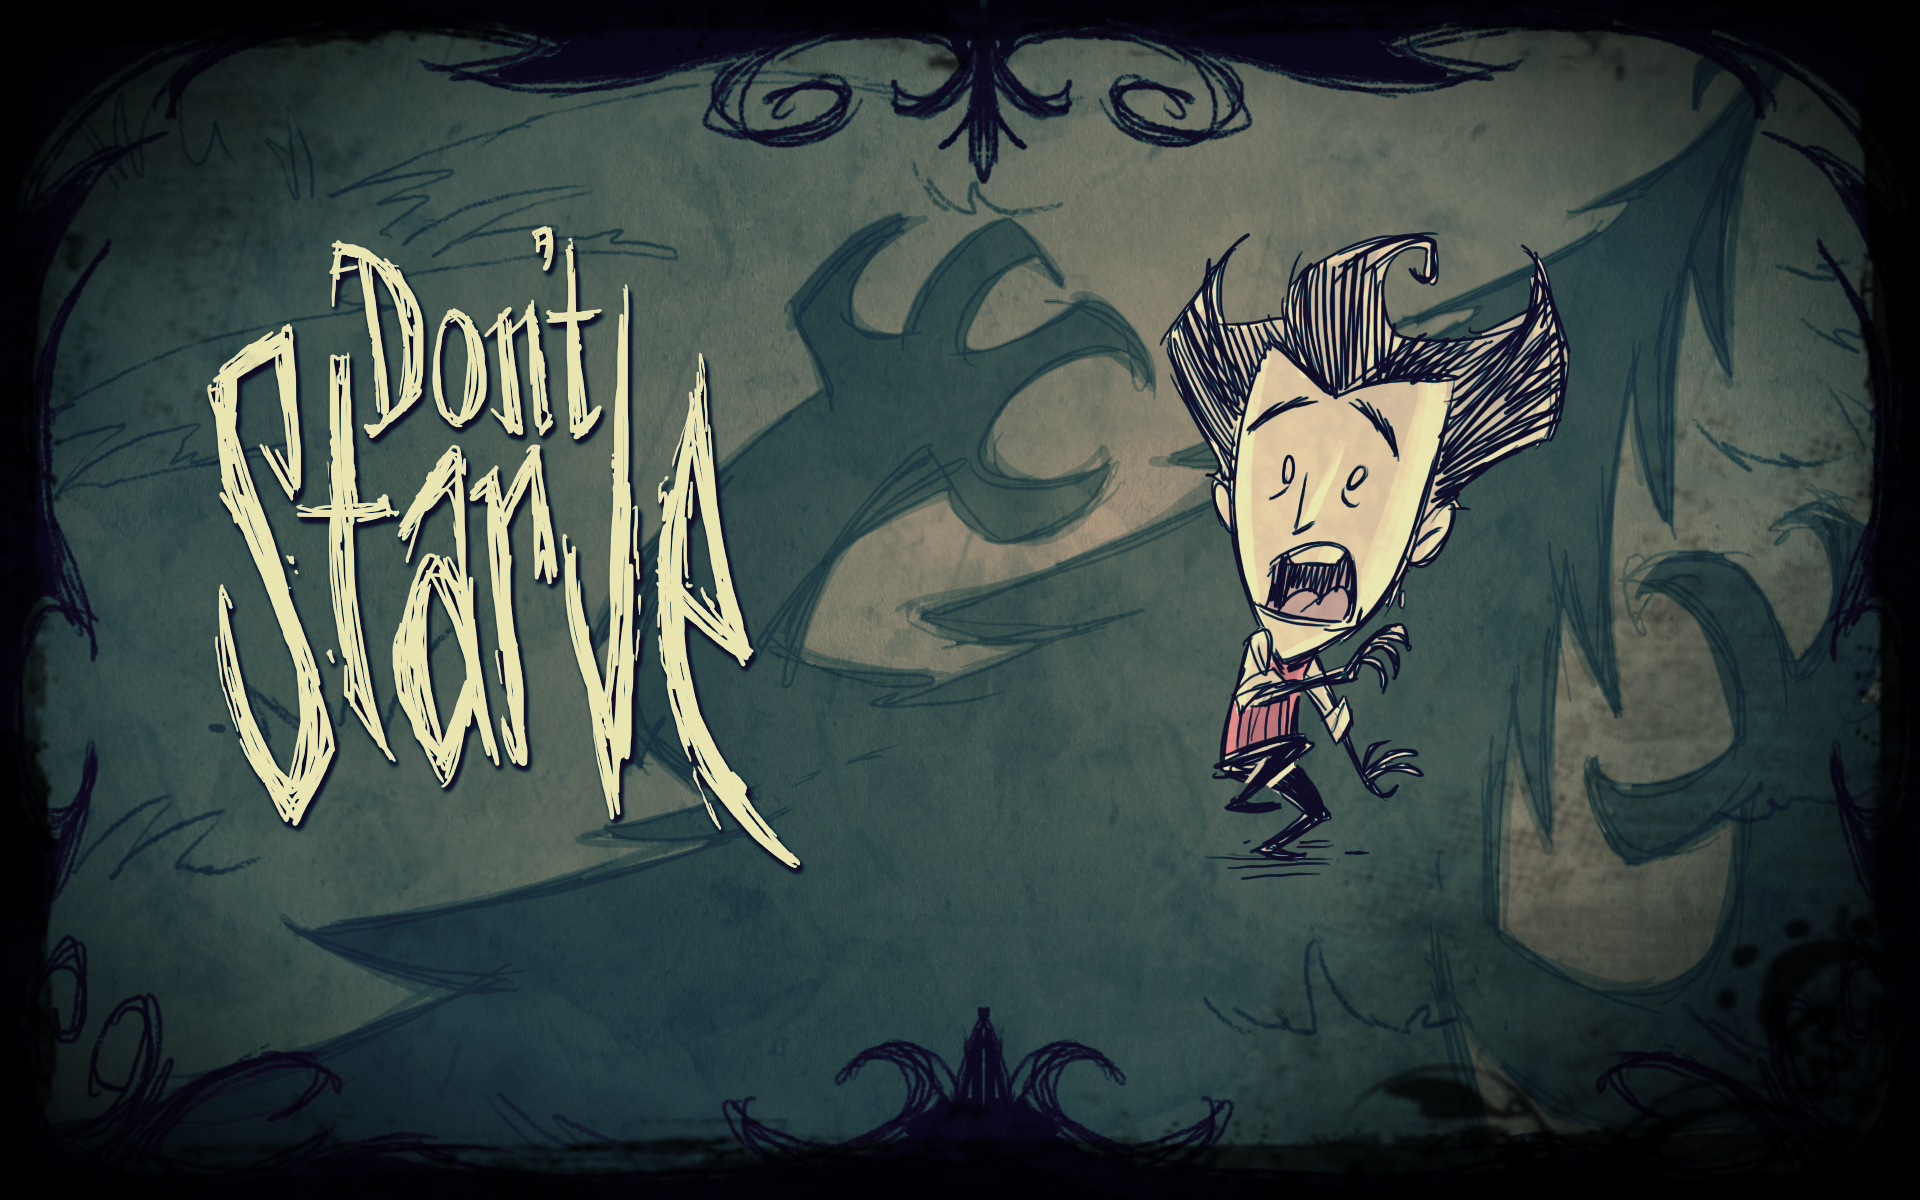 geekstra_Dont starve